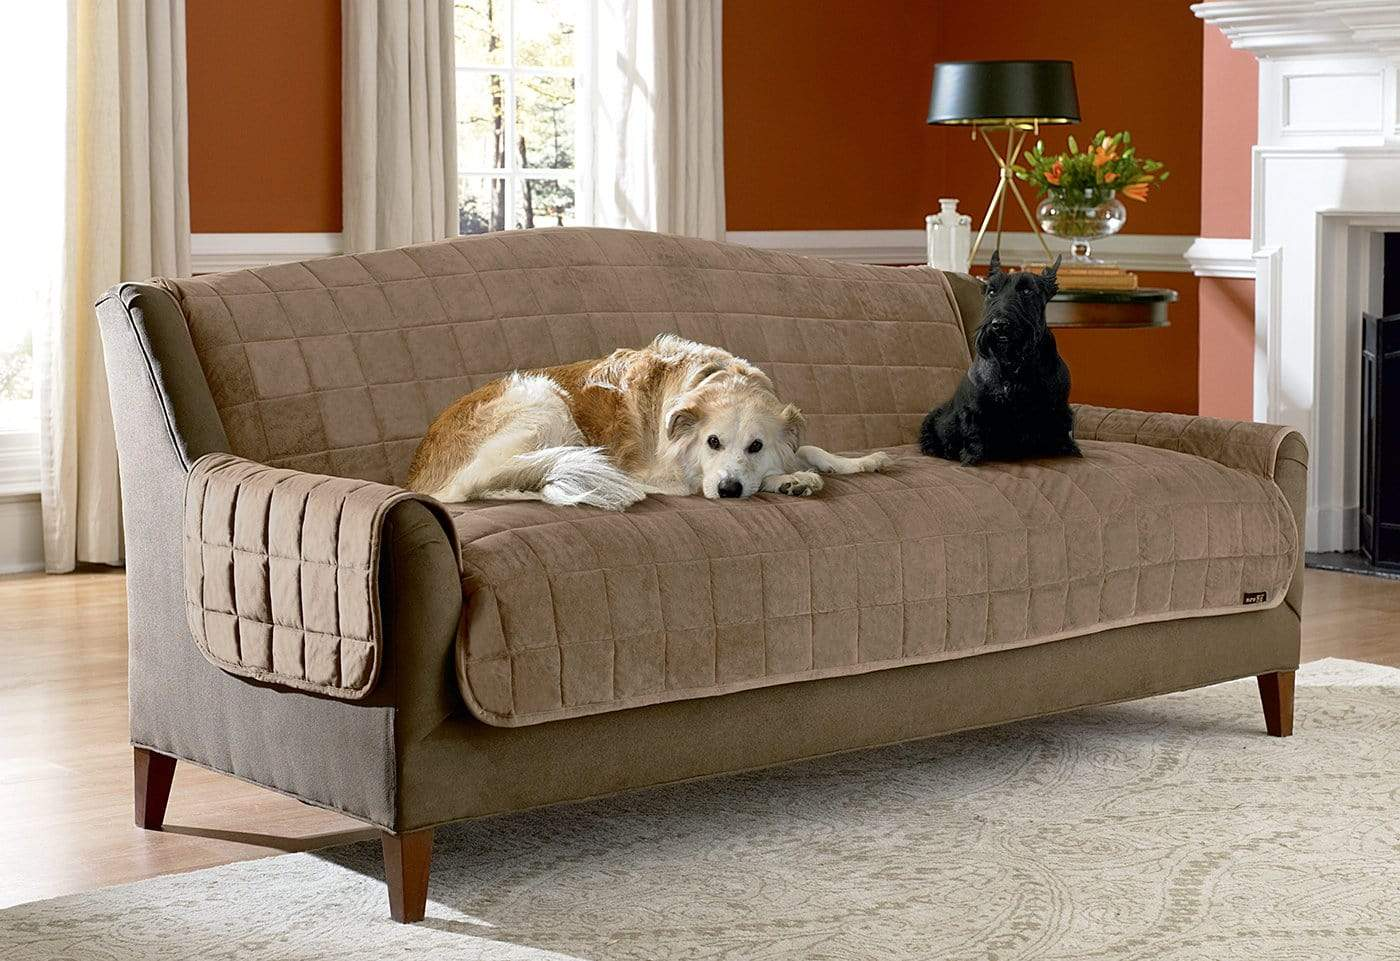 Deluxe Comfort Sofa Furniture Cover With Arms Microban® Antimicrobial Pet Furniture Cover Machine Washable - Sofa / Sable